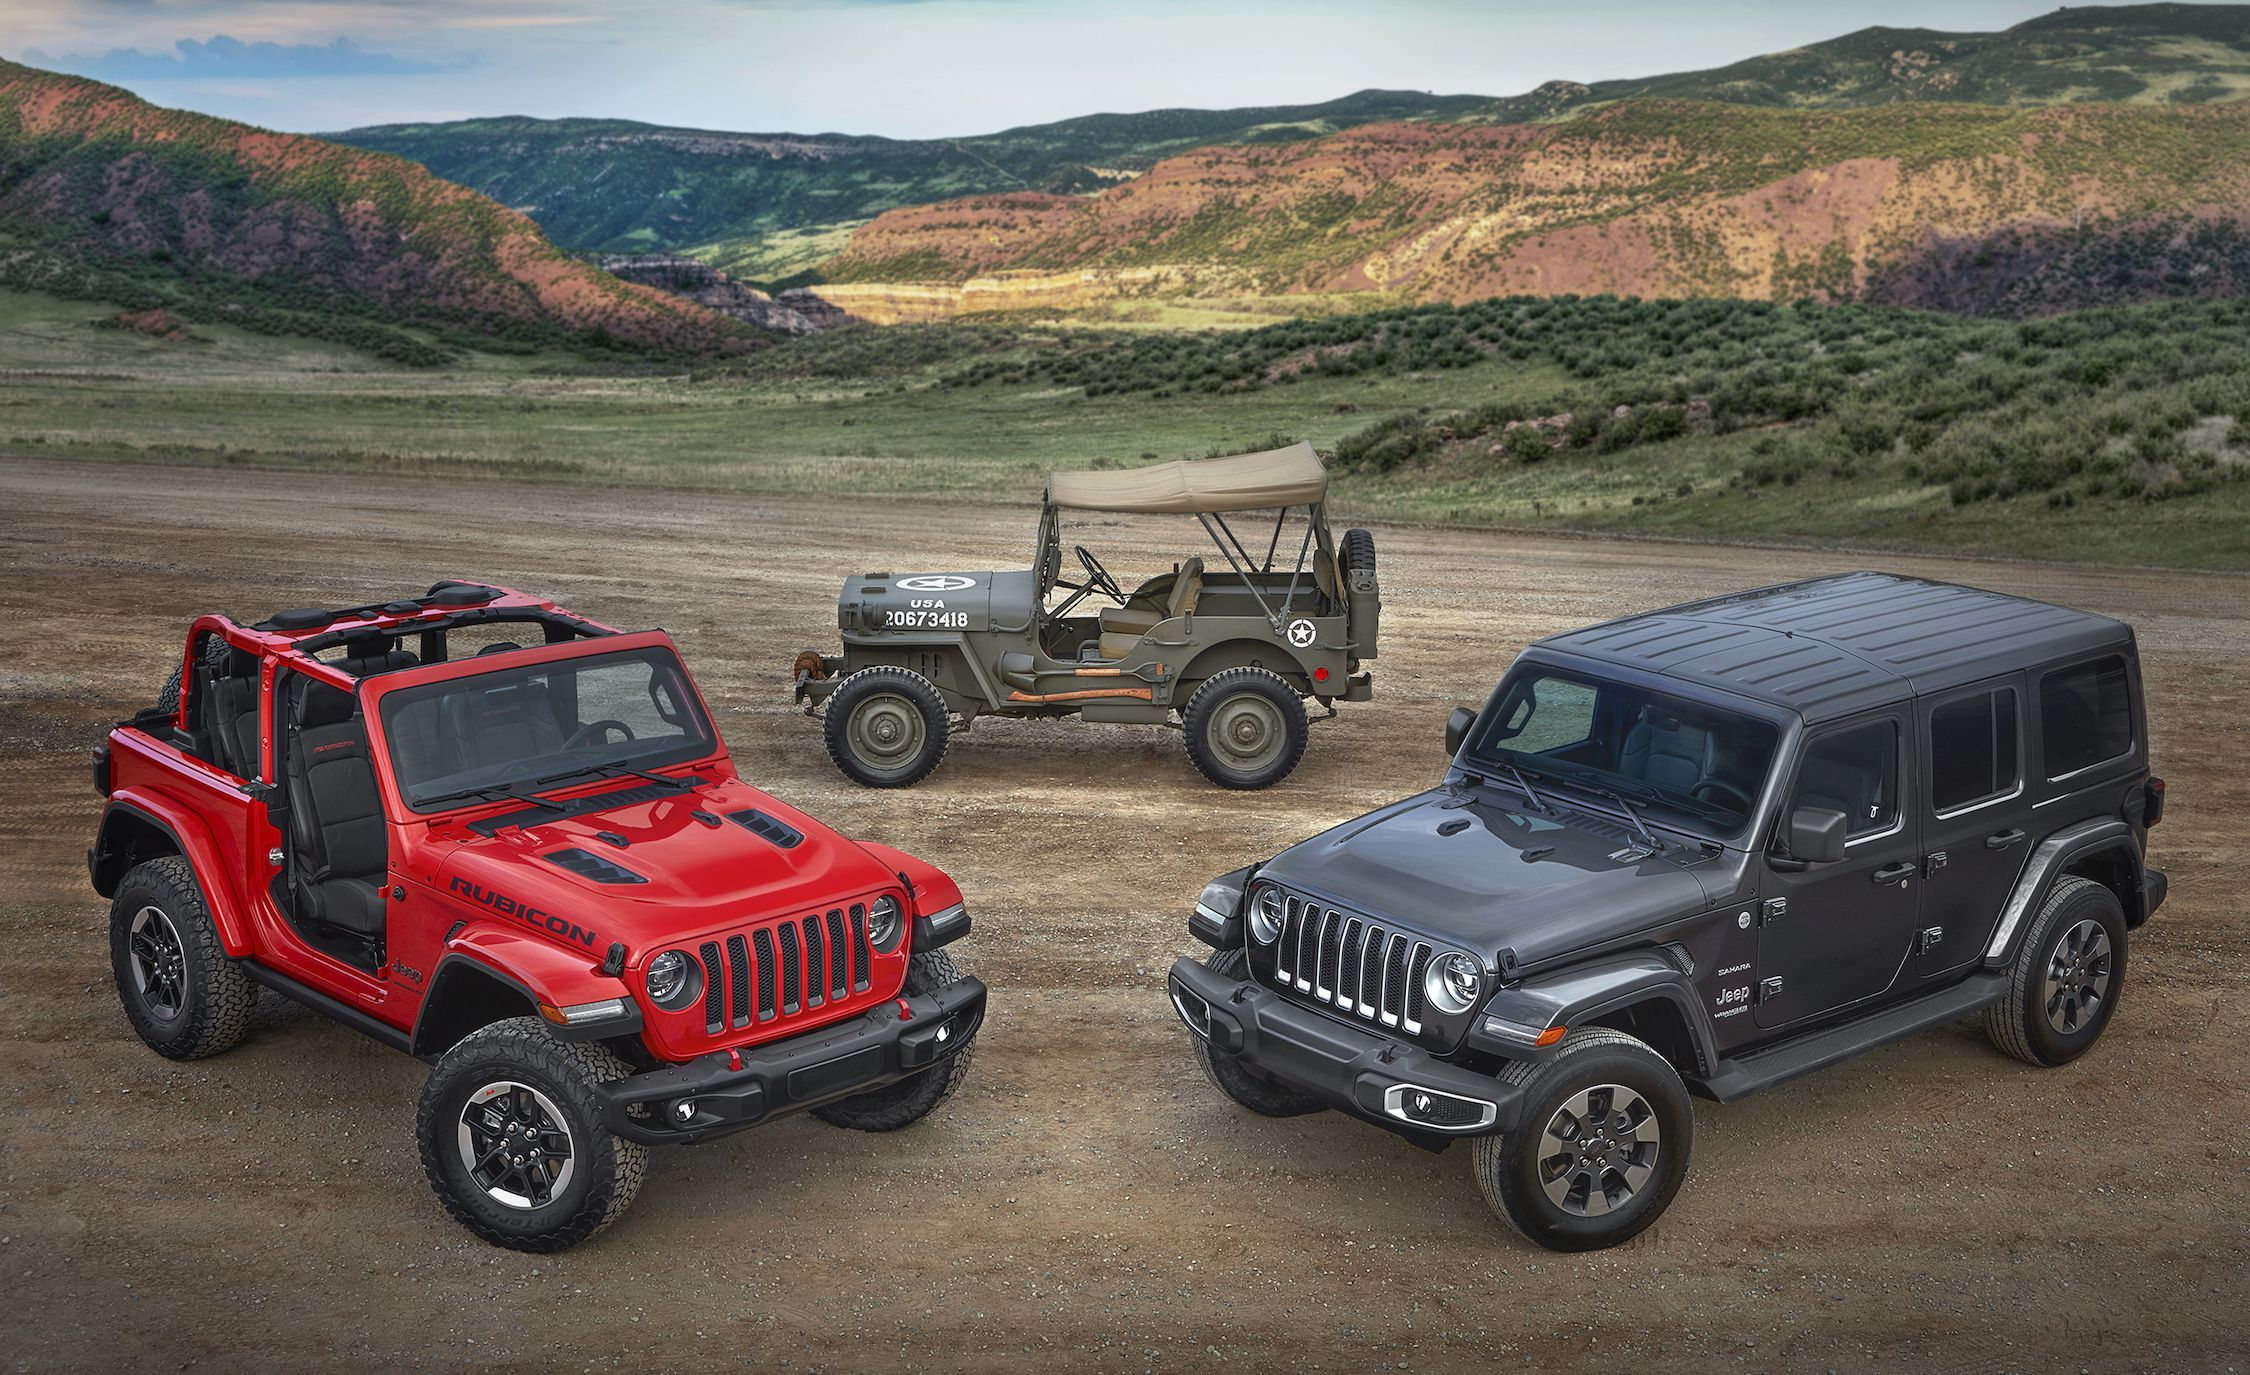 Pin By David James On Automobiles Jeeps Jeep Wrangler New Jeep Wrangler Jeep Wrangler Reviews